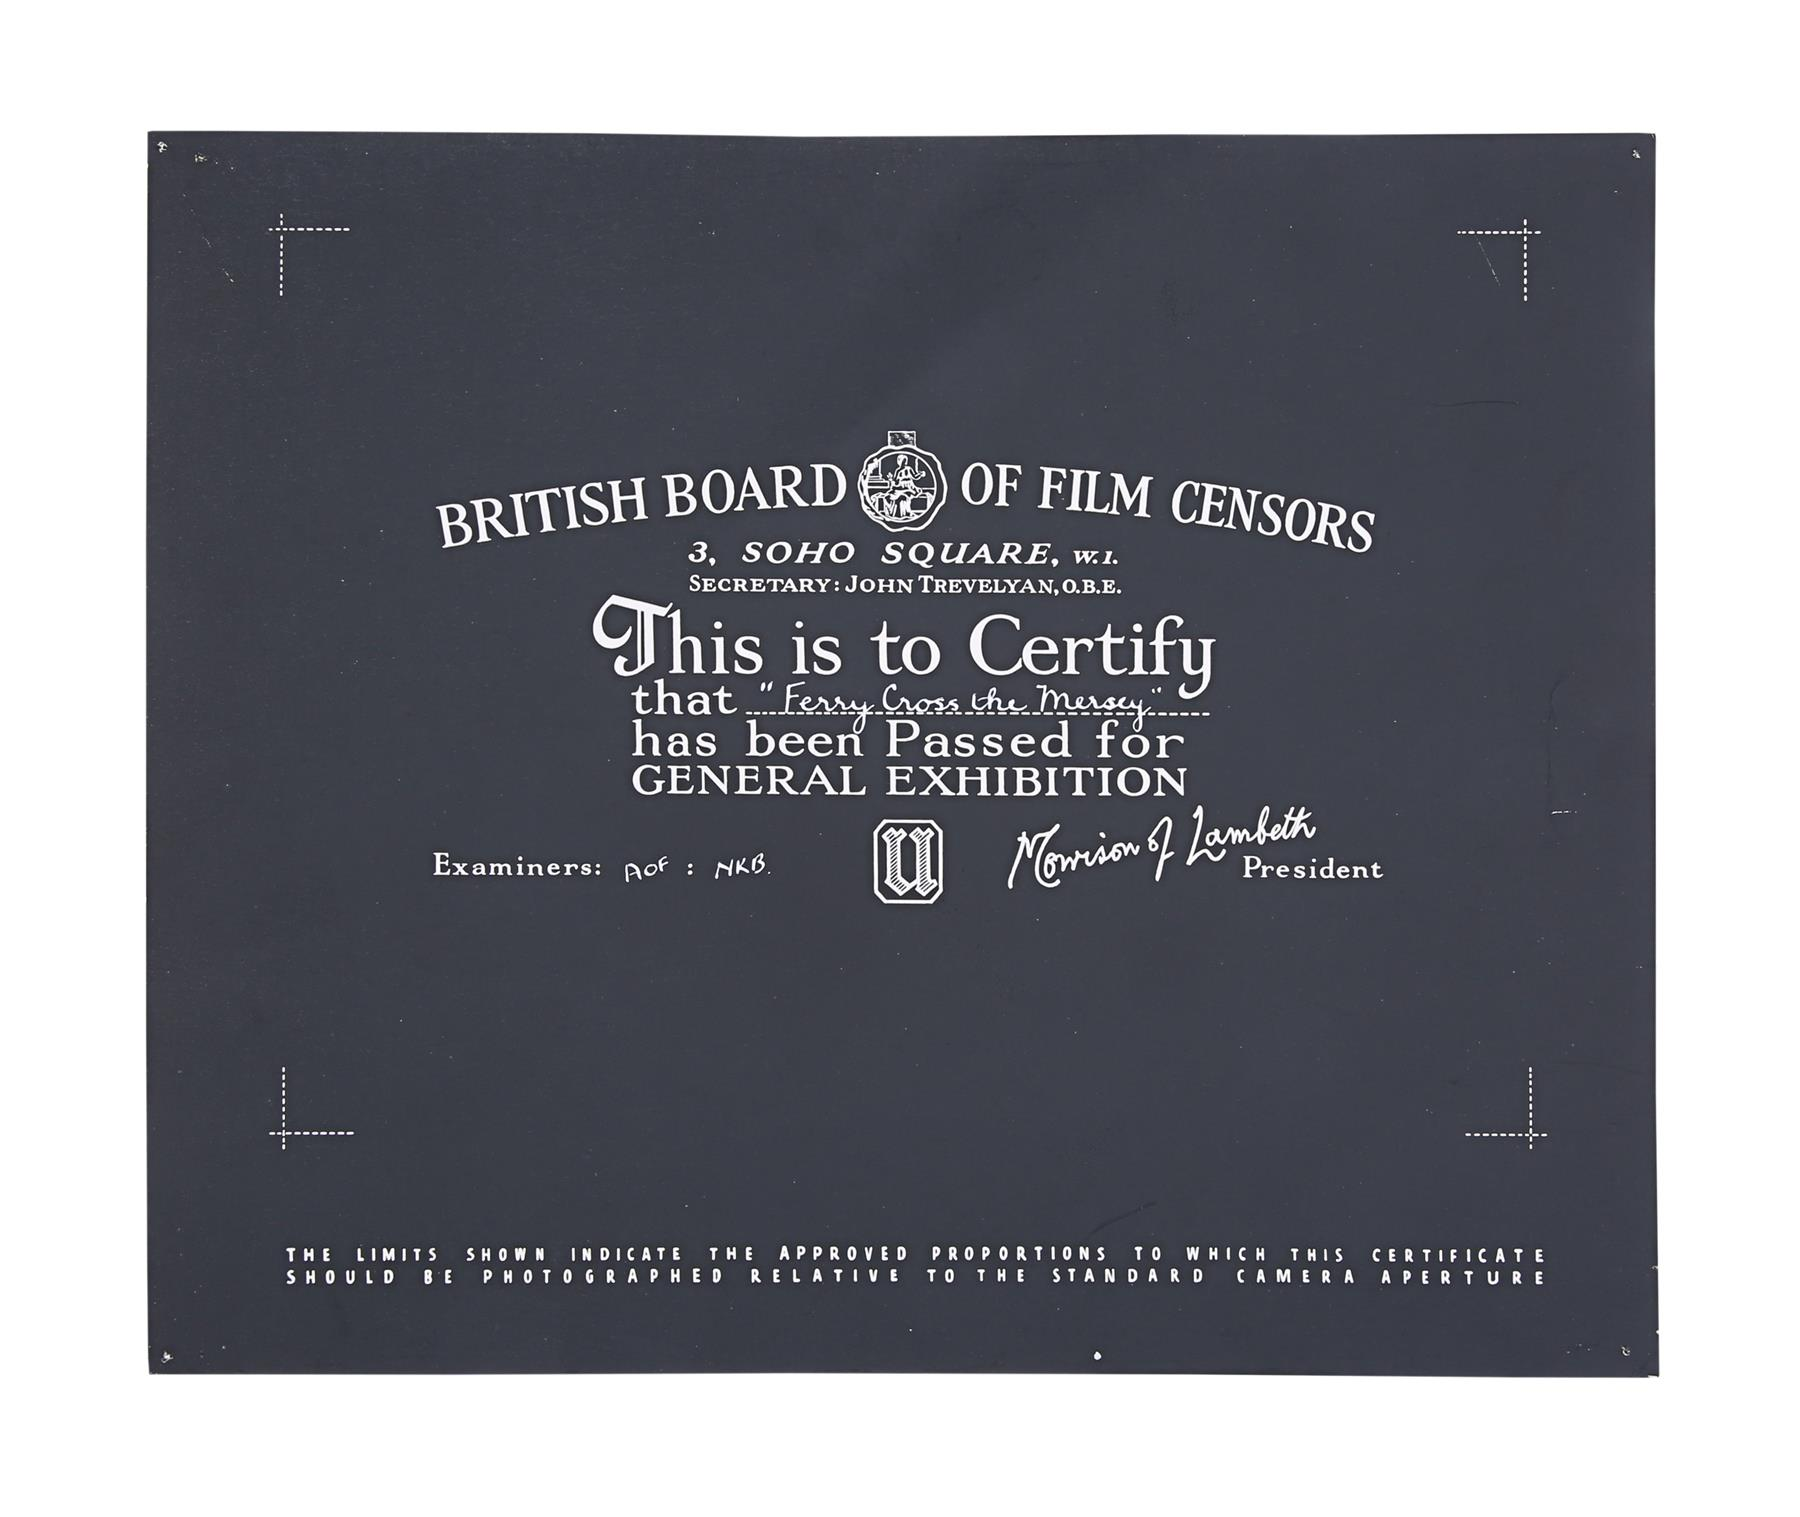 VARIOUS PRODUCTIONS - BBFC Certificates Musicals - Image 5 of 6